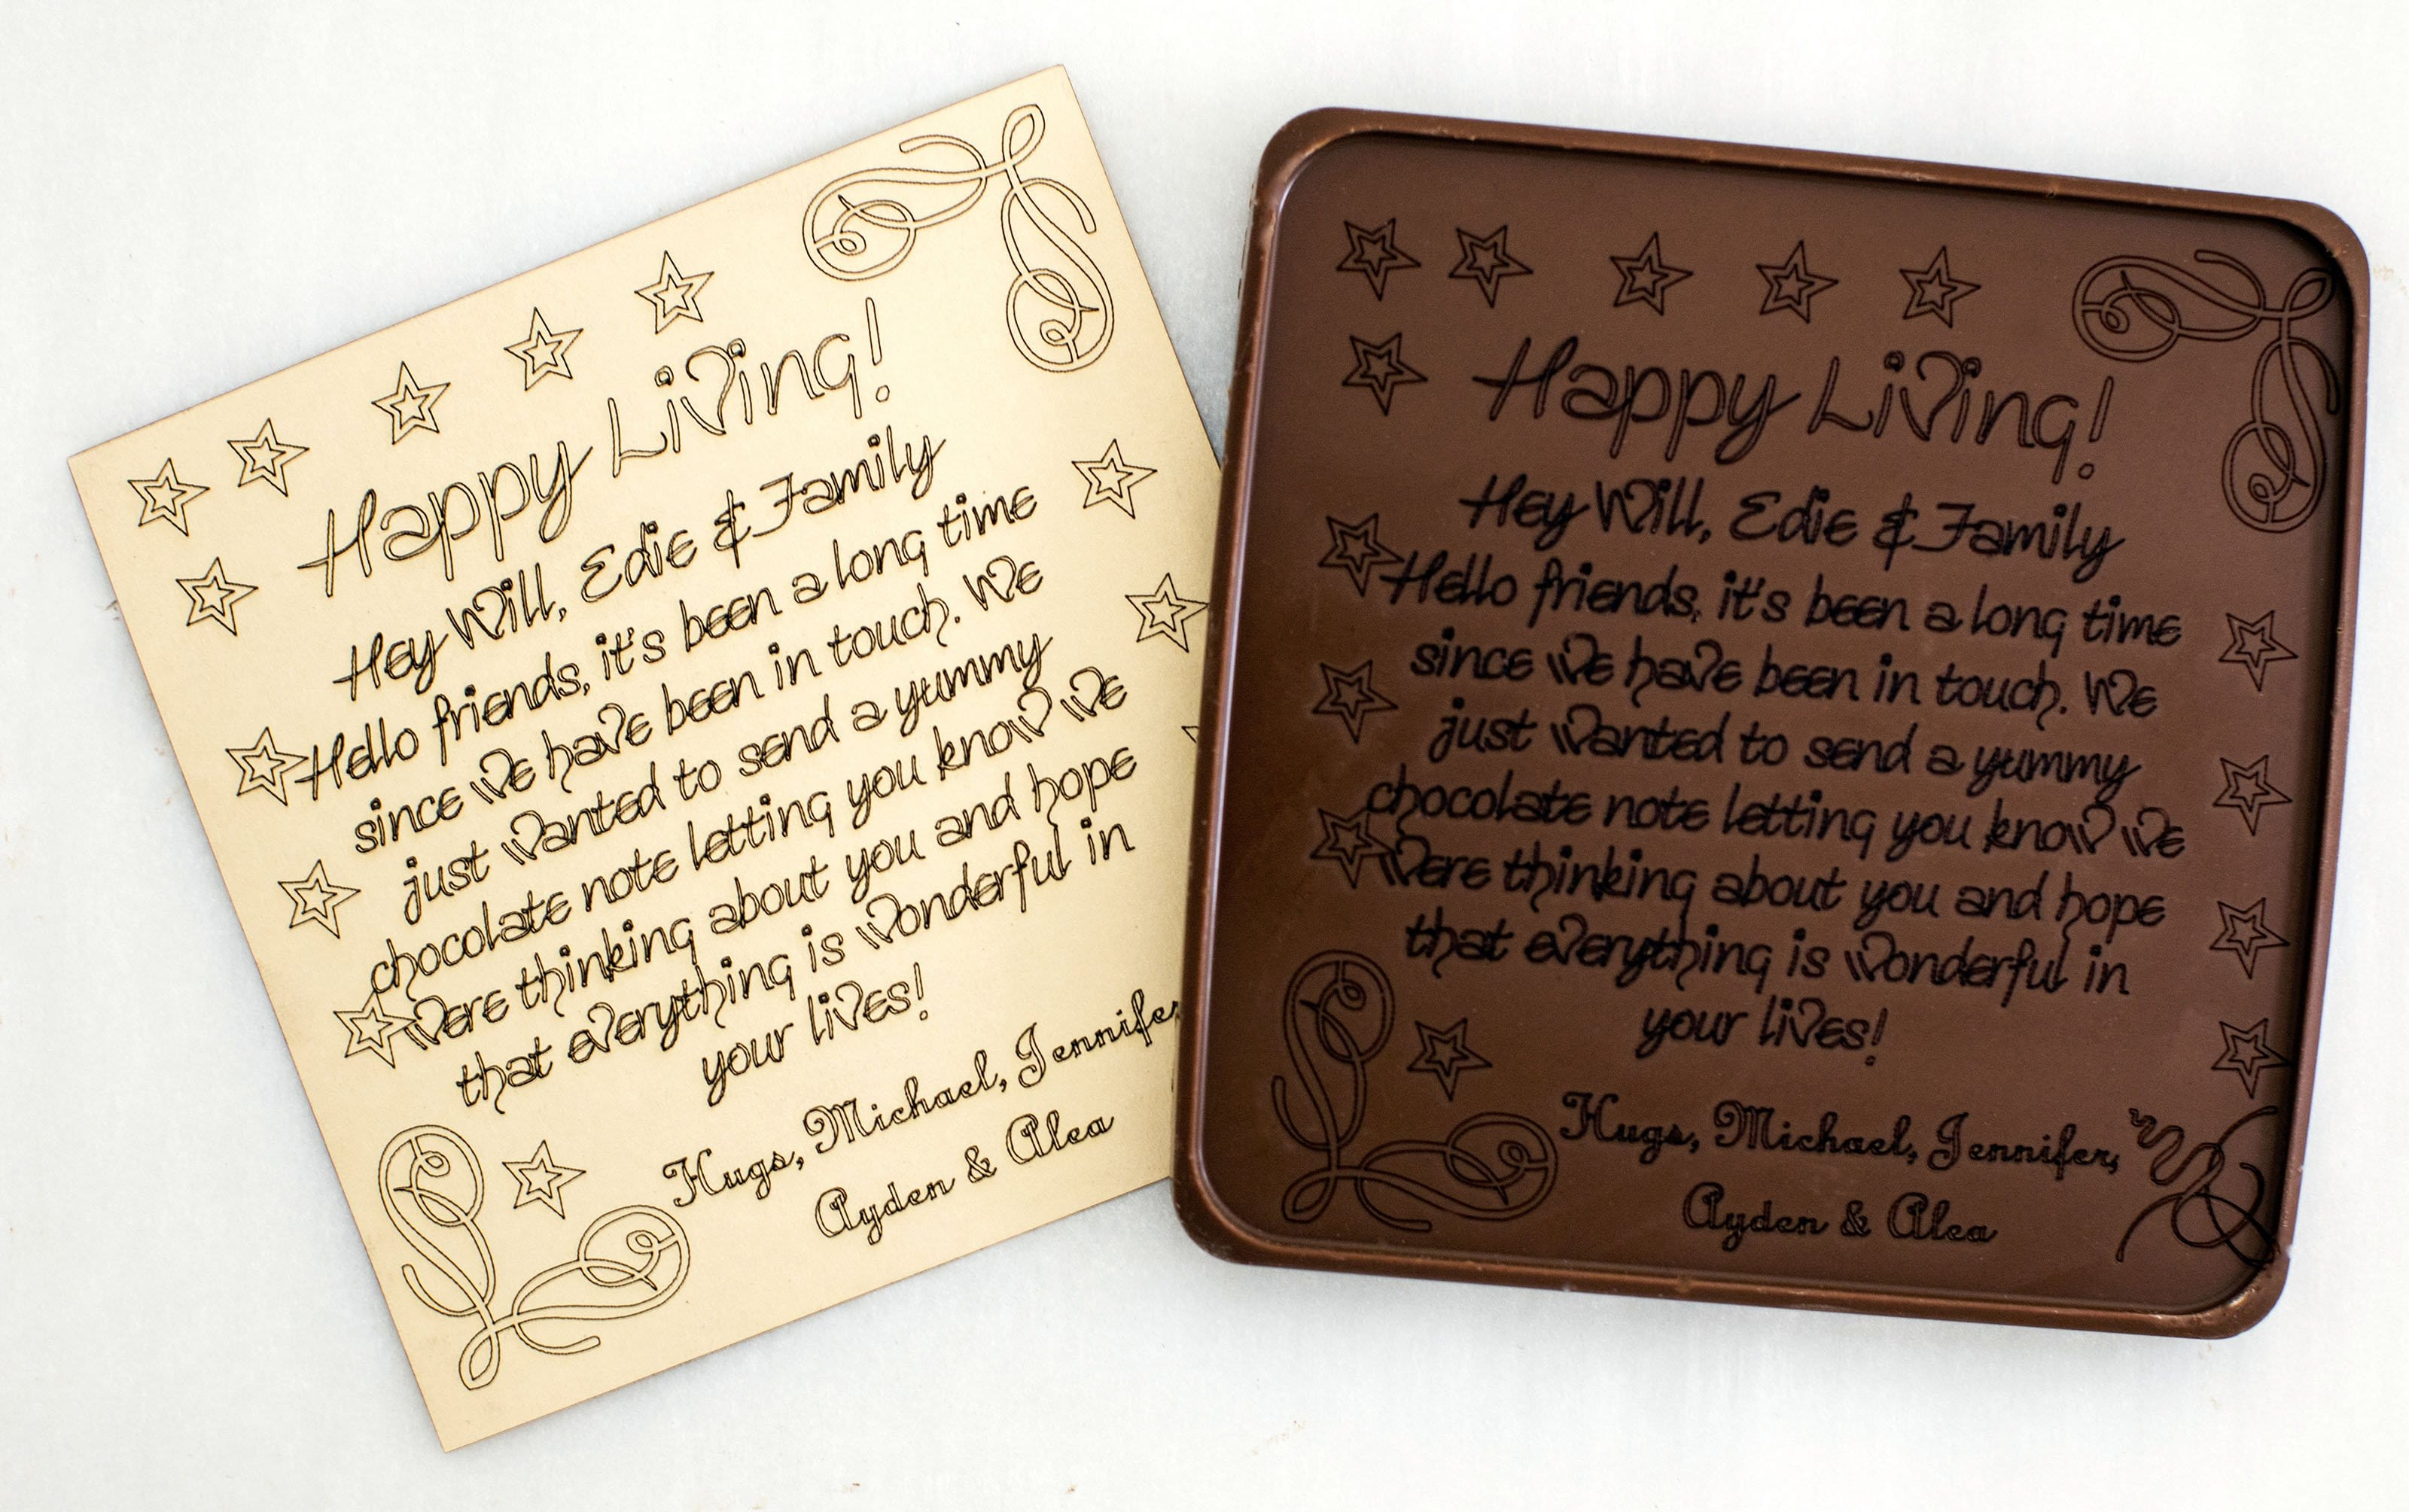 5x5 chocolate note with laser-engraved (paper) letter